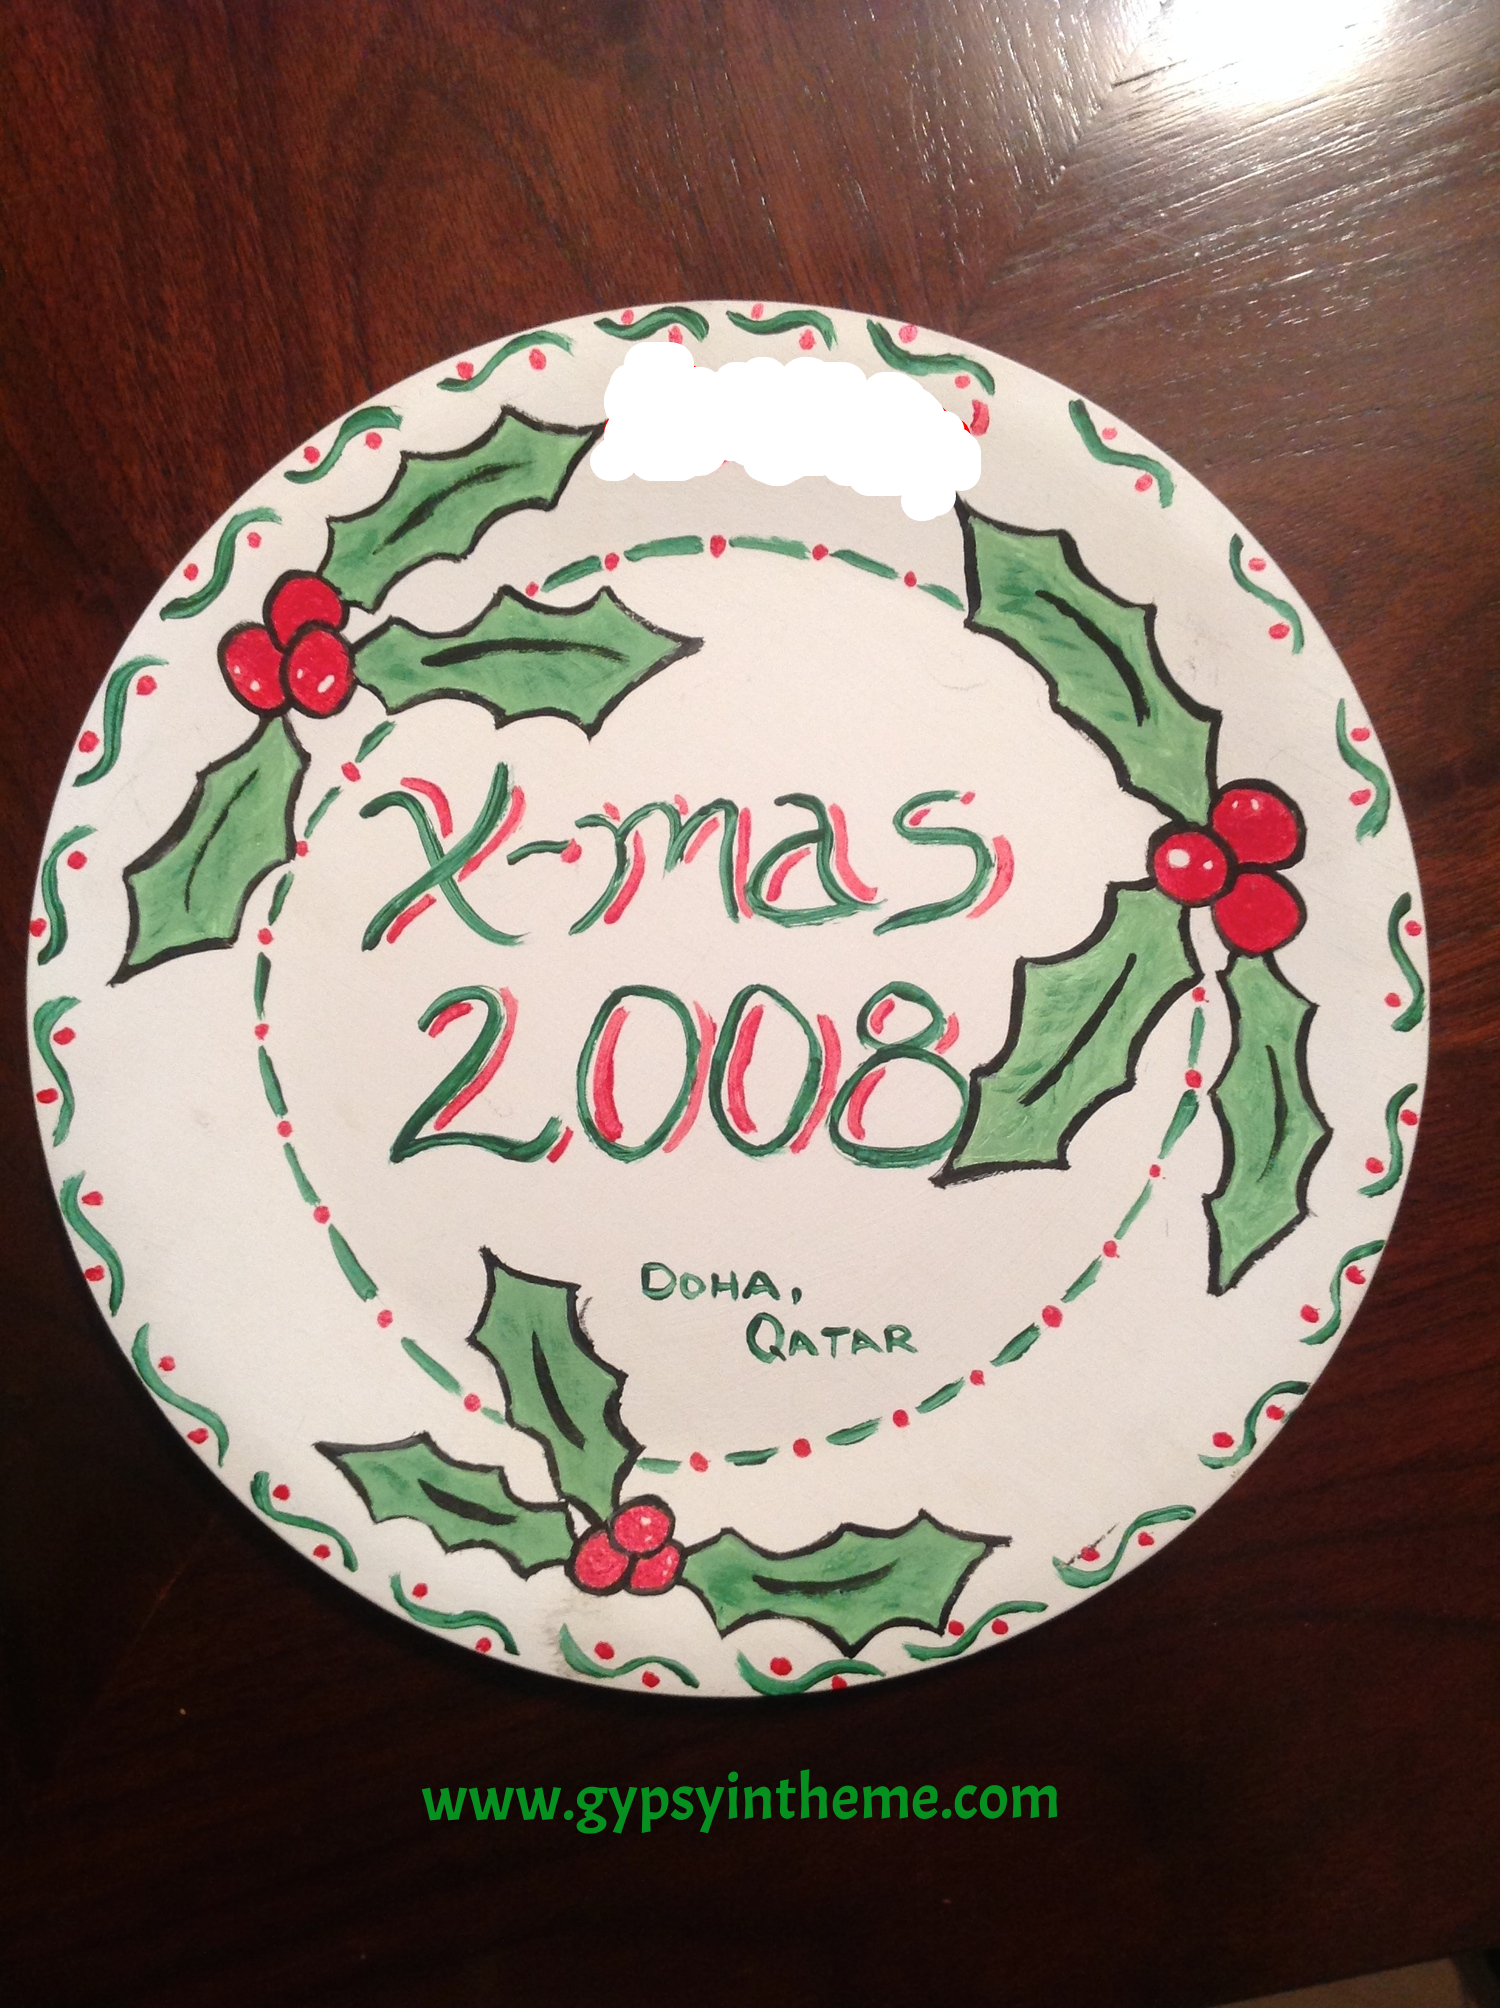 A wooden plate I painted during our first years in Doha.  We didn't have many decorations to put up back then ...